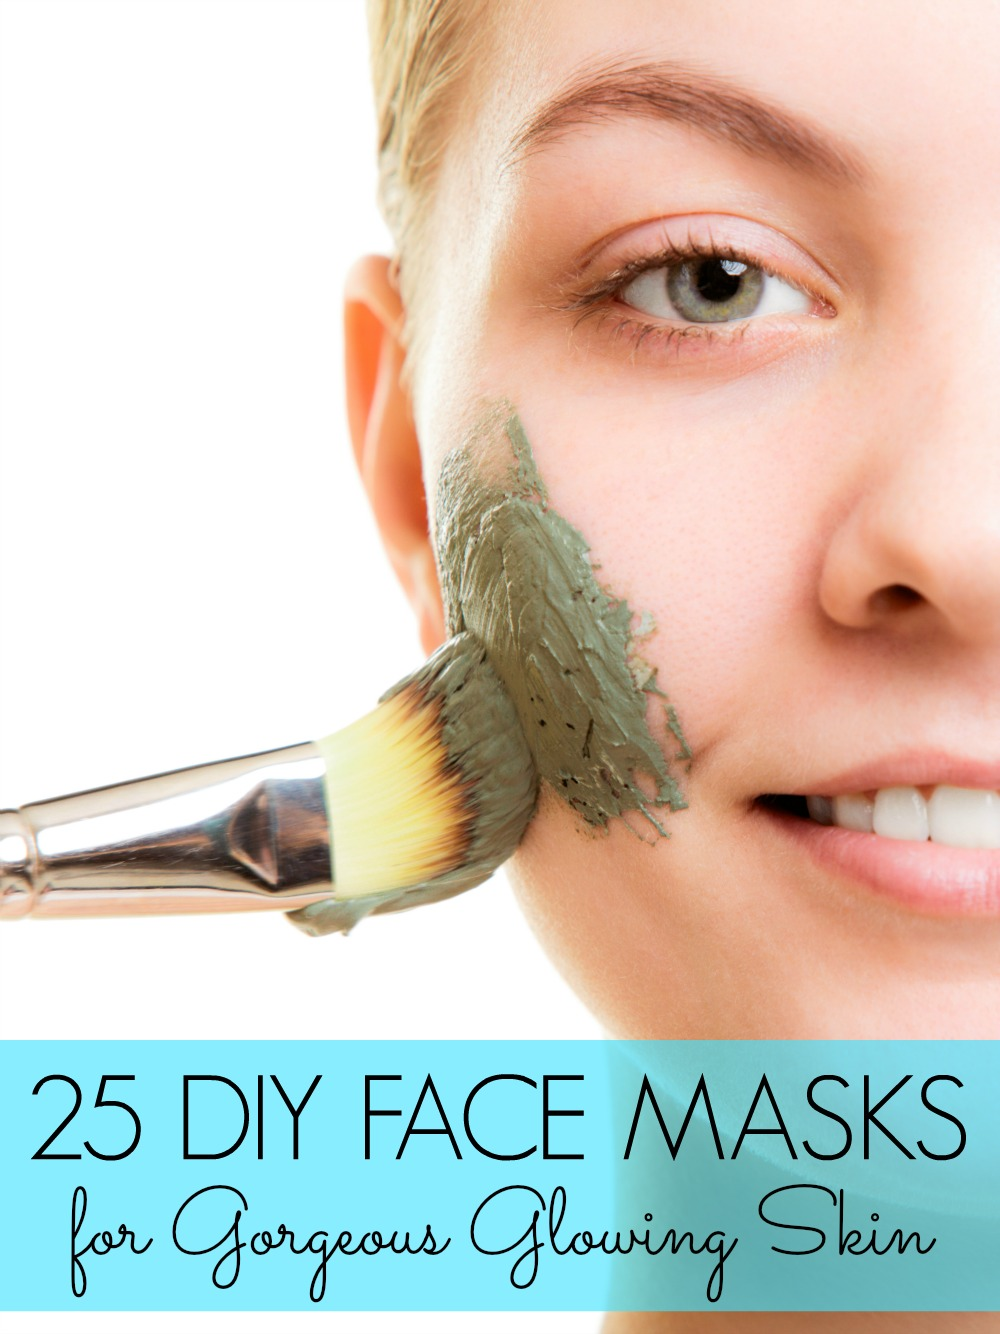 I have a really hard time putting food on my face. Bananas? Gag me. Avocado? Ugh. Coffee? Okay, now we're talking. But if we're talking about DIY face masks ...